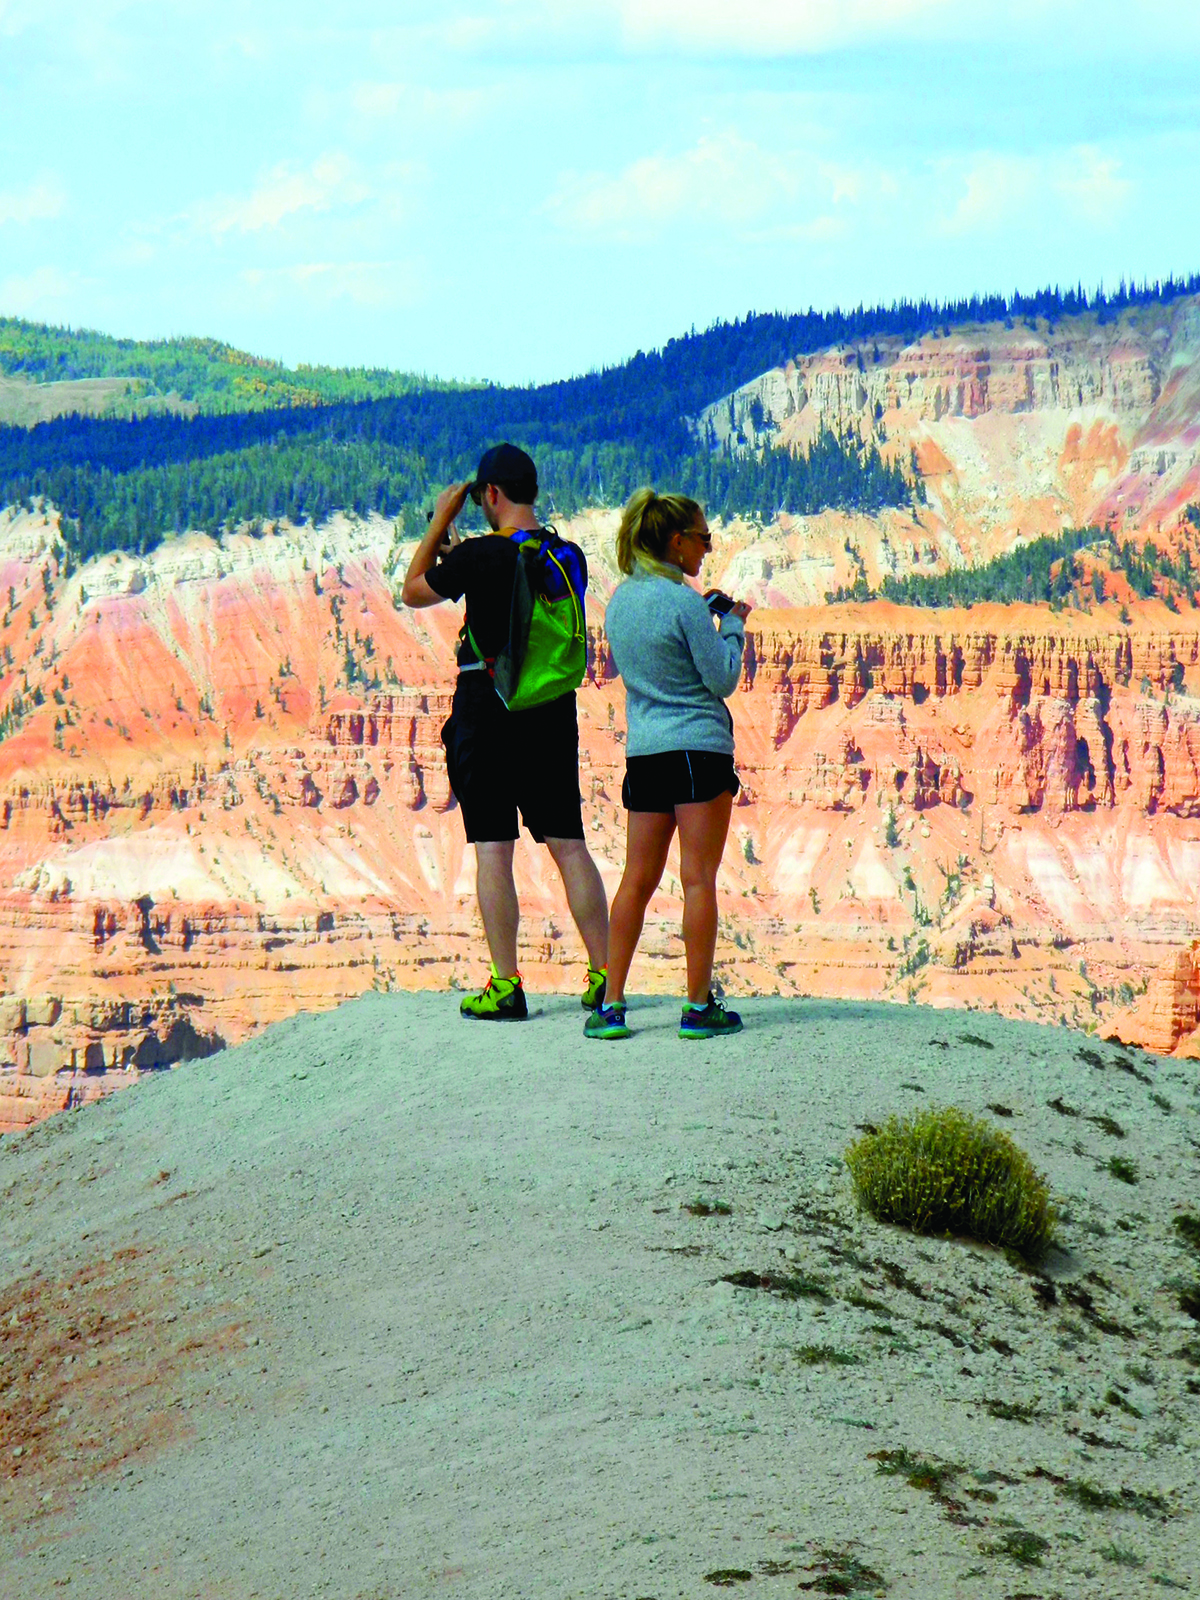 Young man and woman photographing pink scenic cliffs from an overlook.